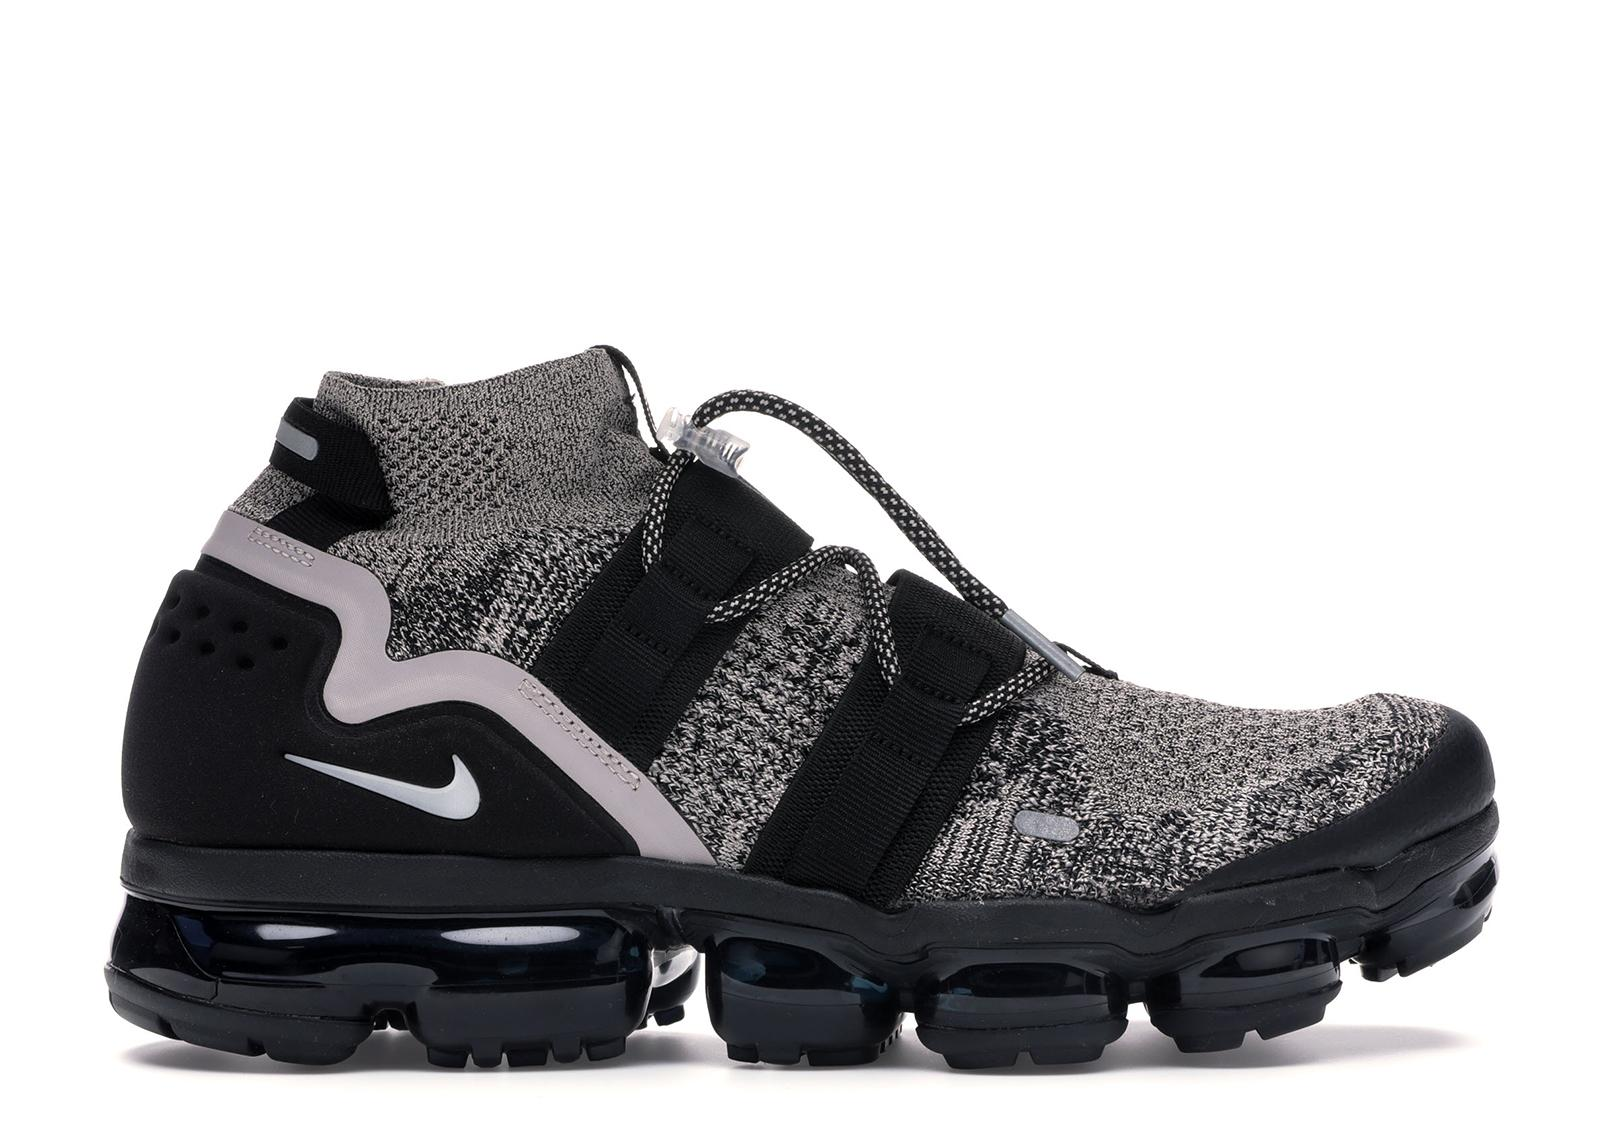 the best attitude 9054d c741f Men's Air Vapormax Utility Moon Particle Black